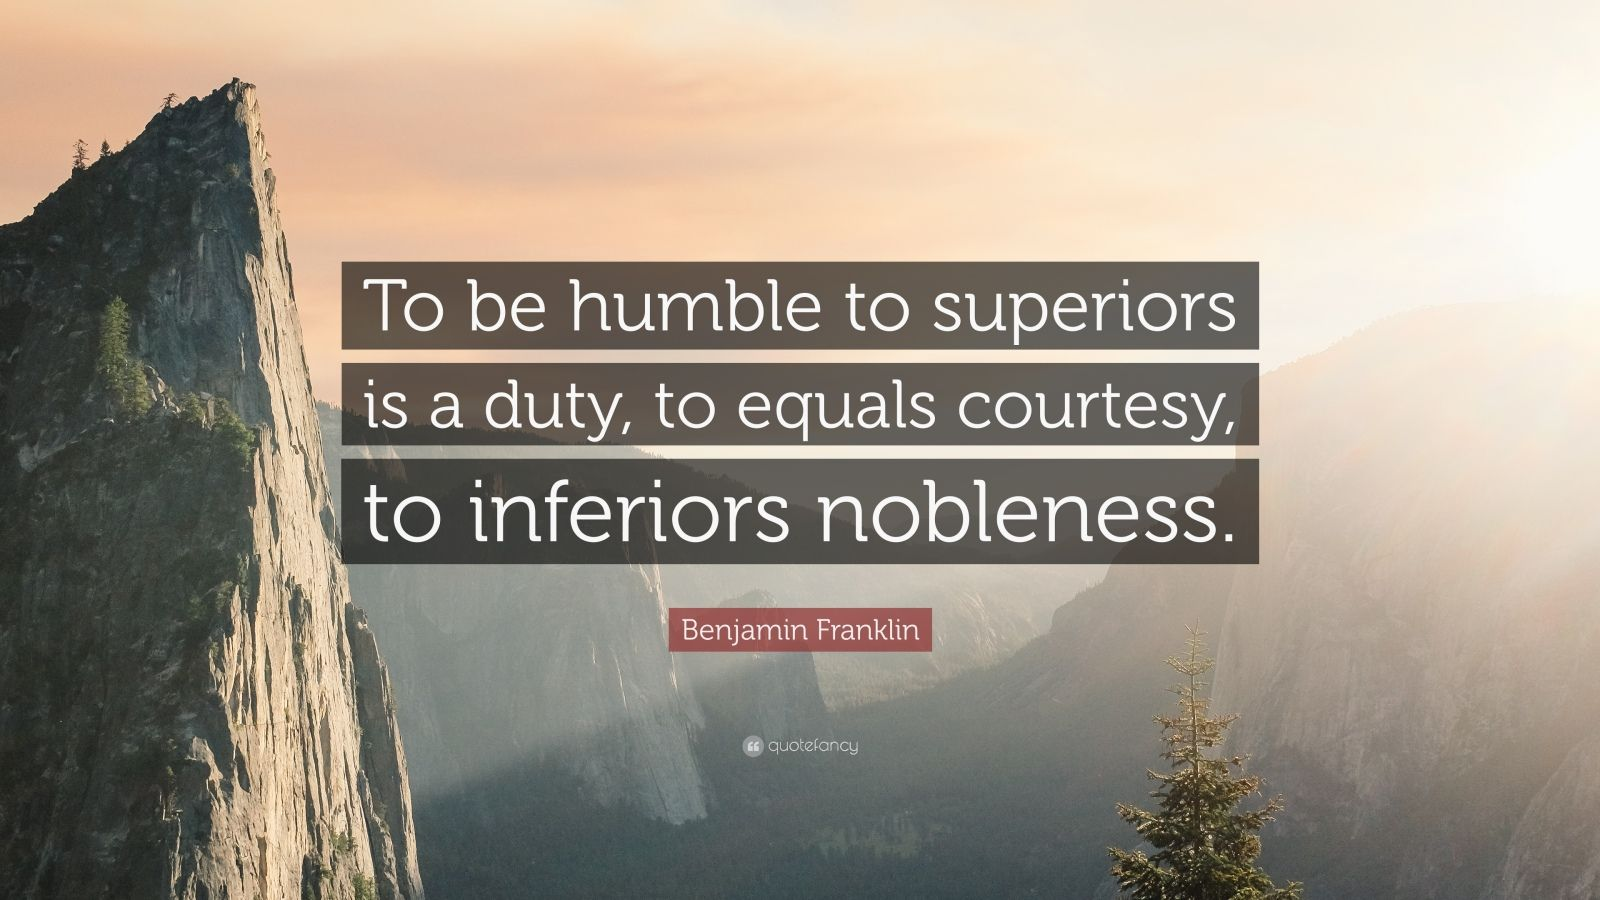 """Benjamin Franklin Quote: """"To be humble to superiors is a duty, to equals courtesy, to inferiors nobleness."""""""